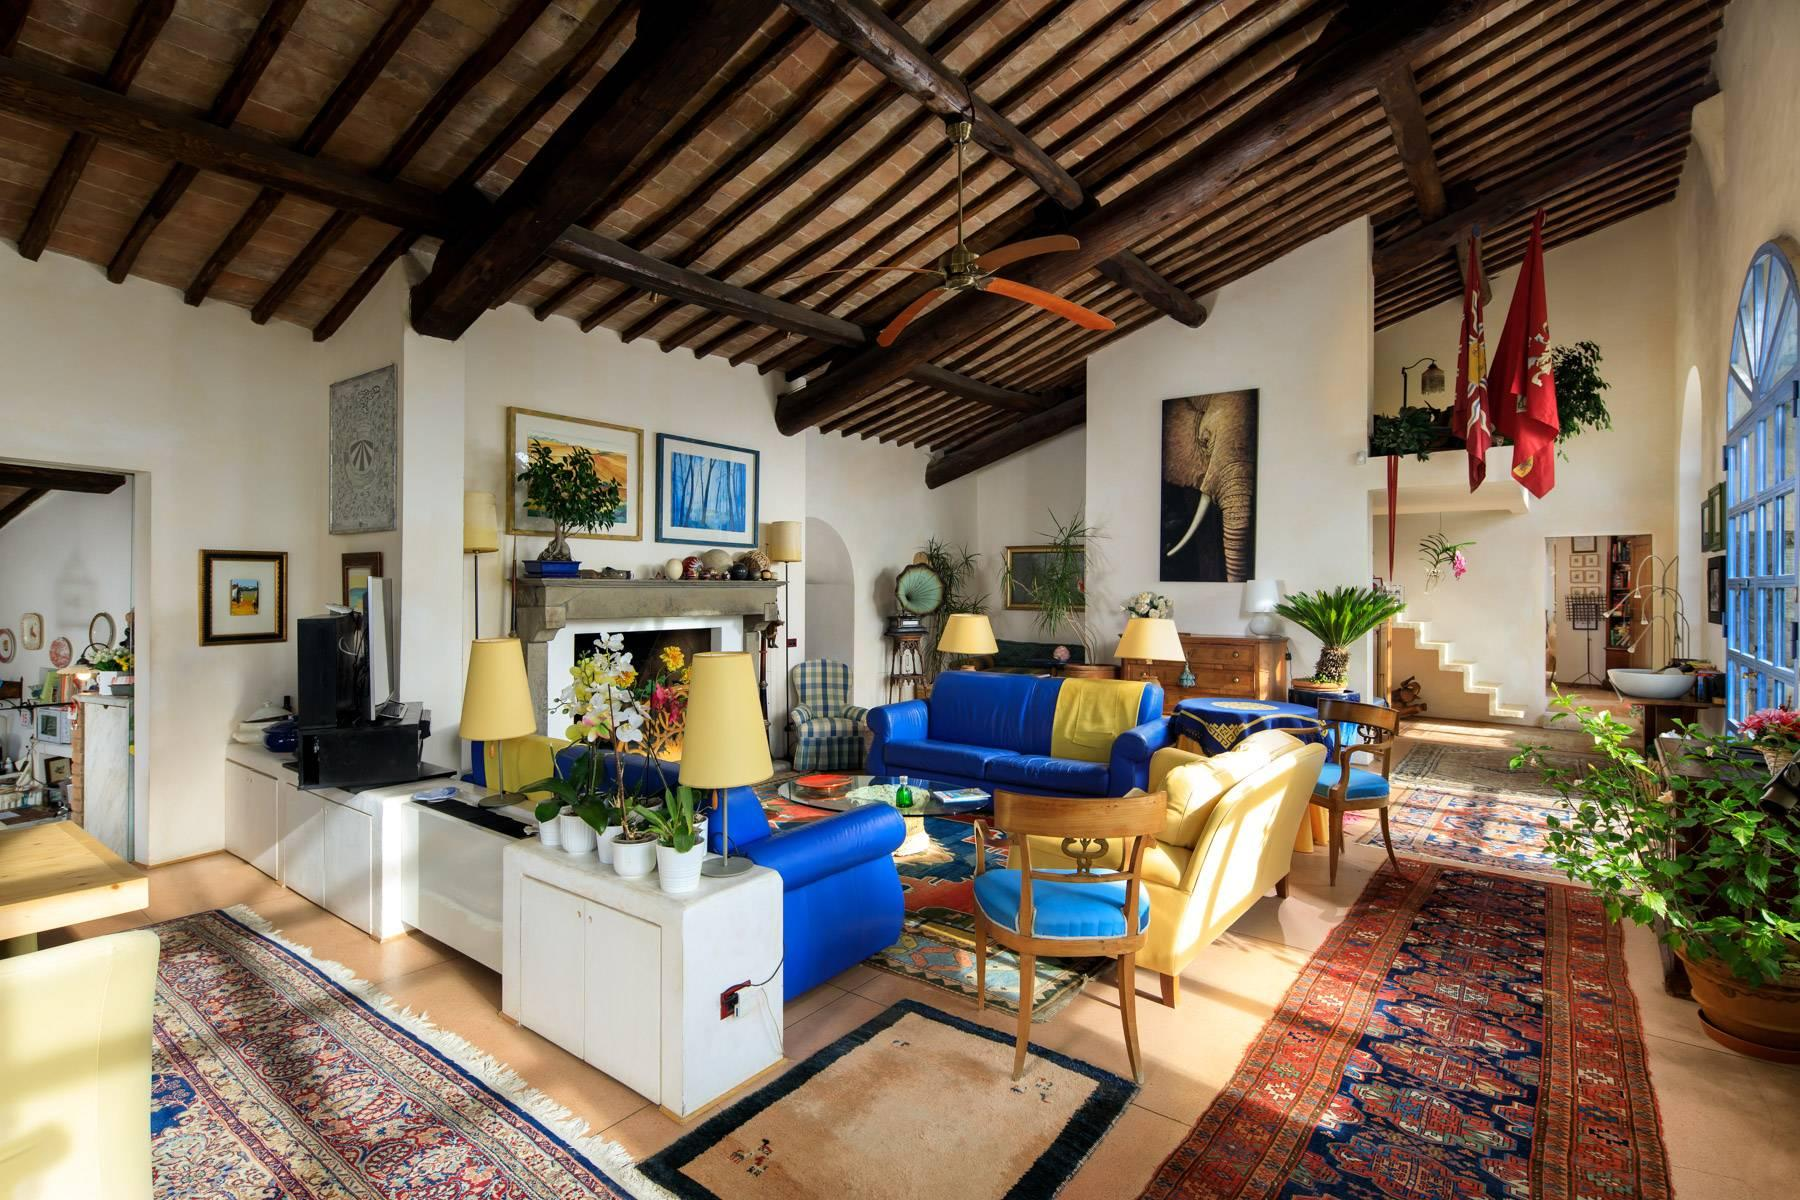 Wonderful historical Villa and country house close by Siena - 14